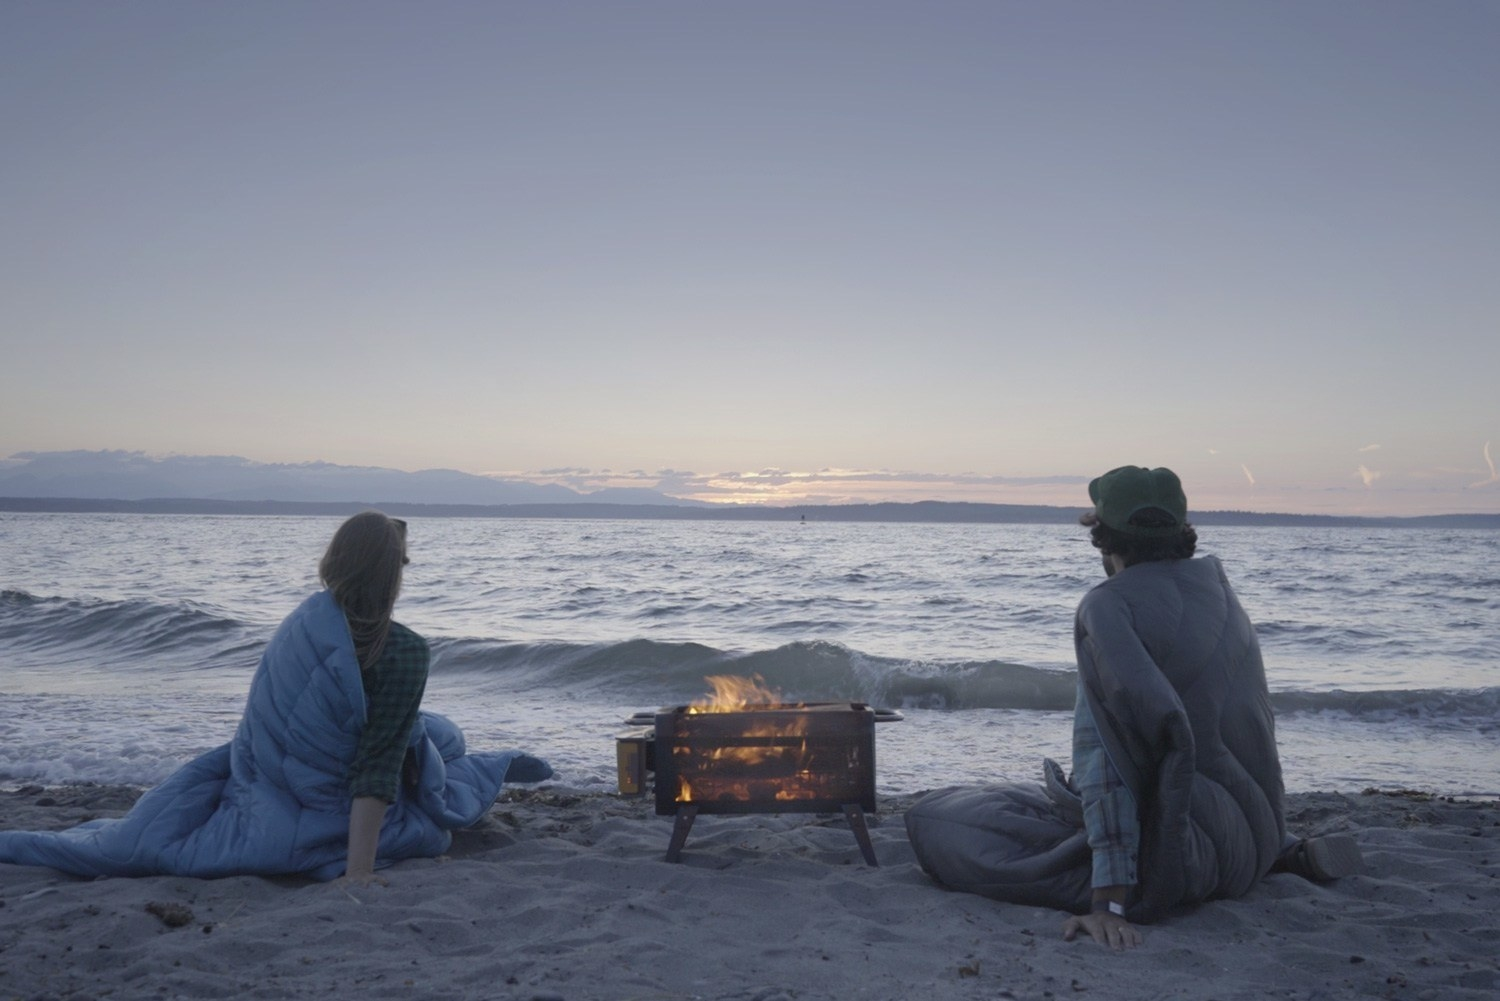 Two people enjoying the fire pit by the beach